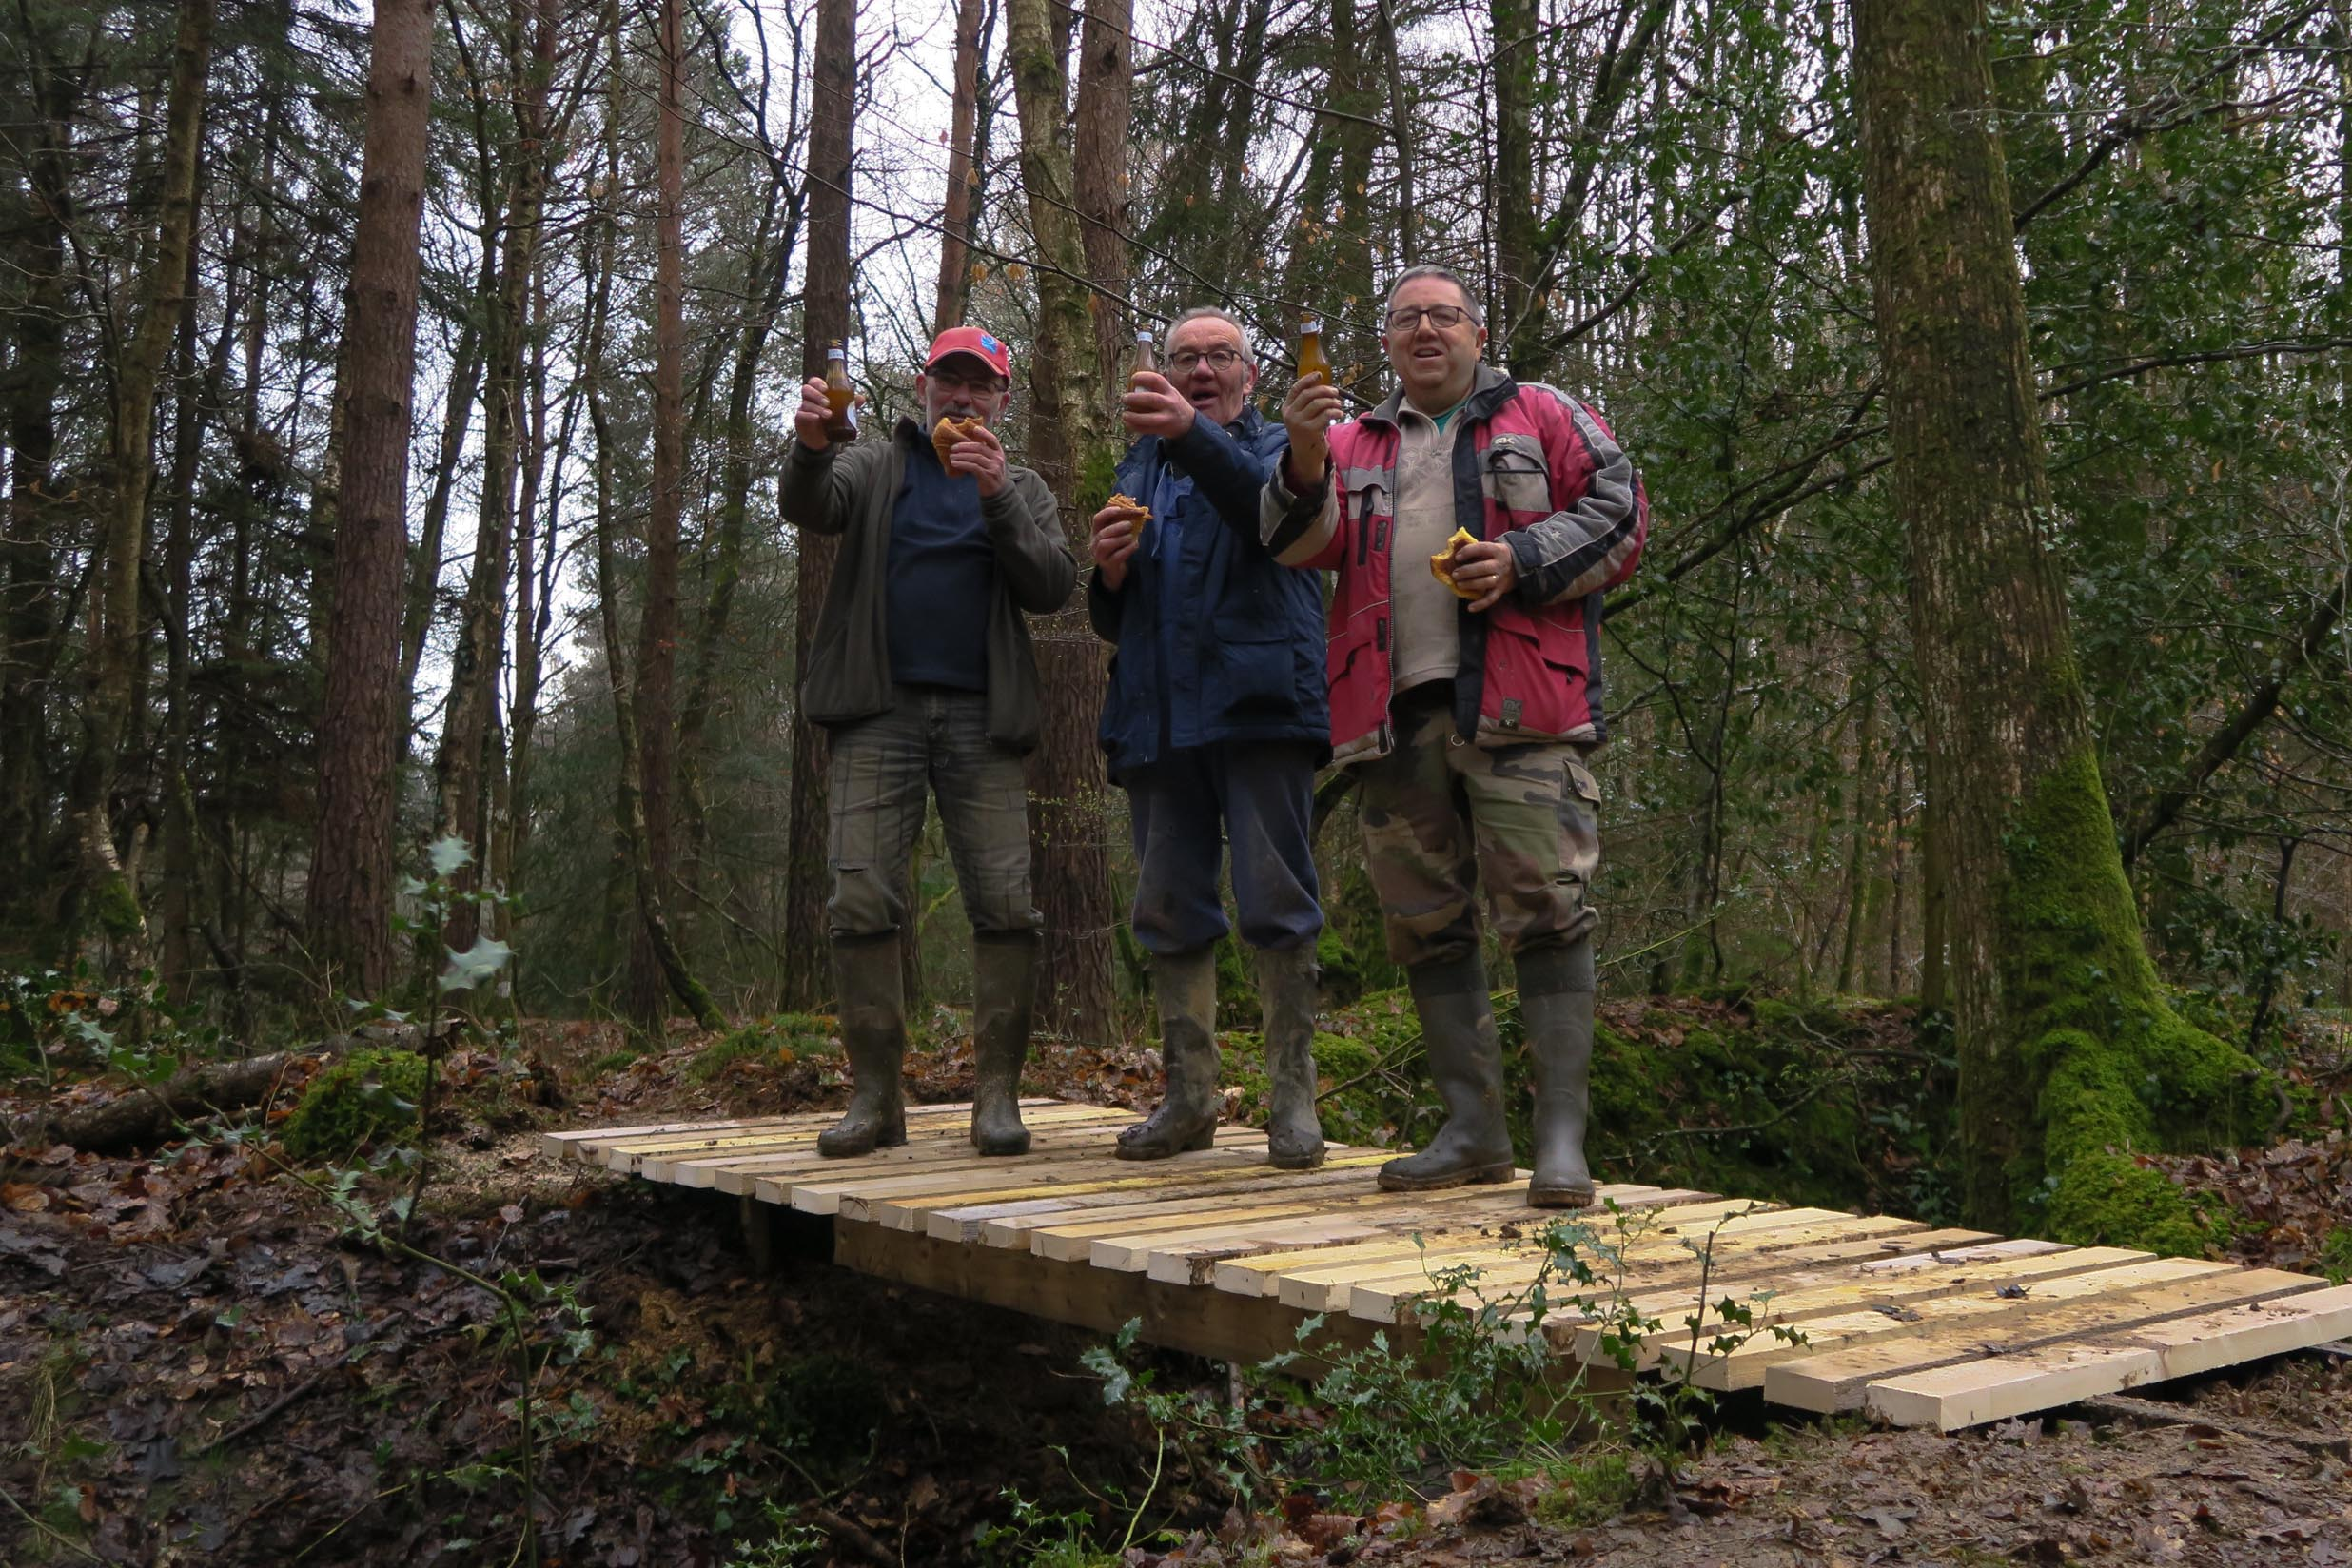 2018-03-10 Fabrication passerelle forêt Rennes 26-7